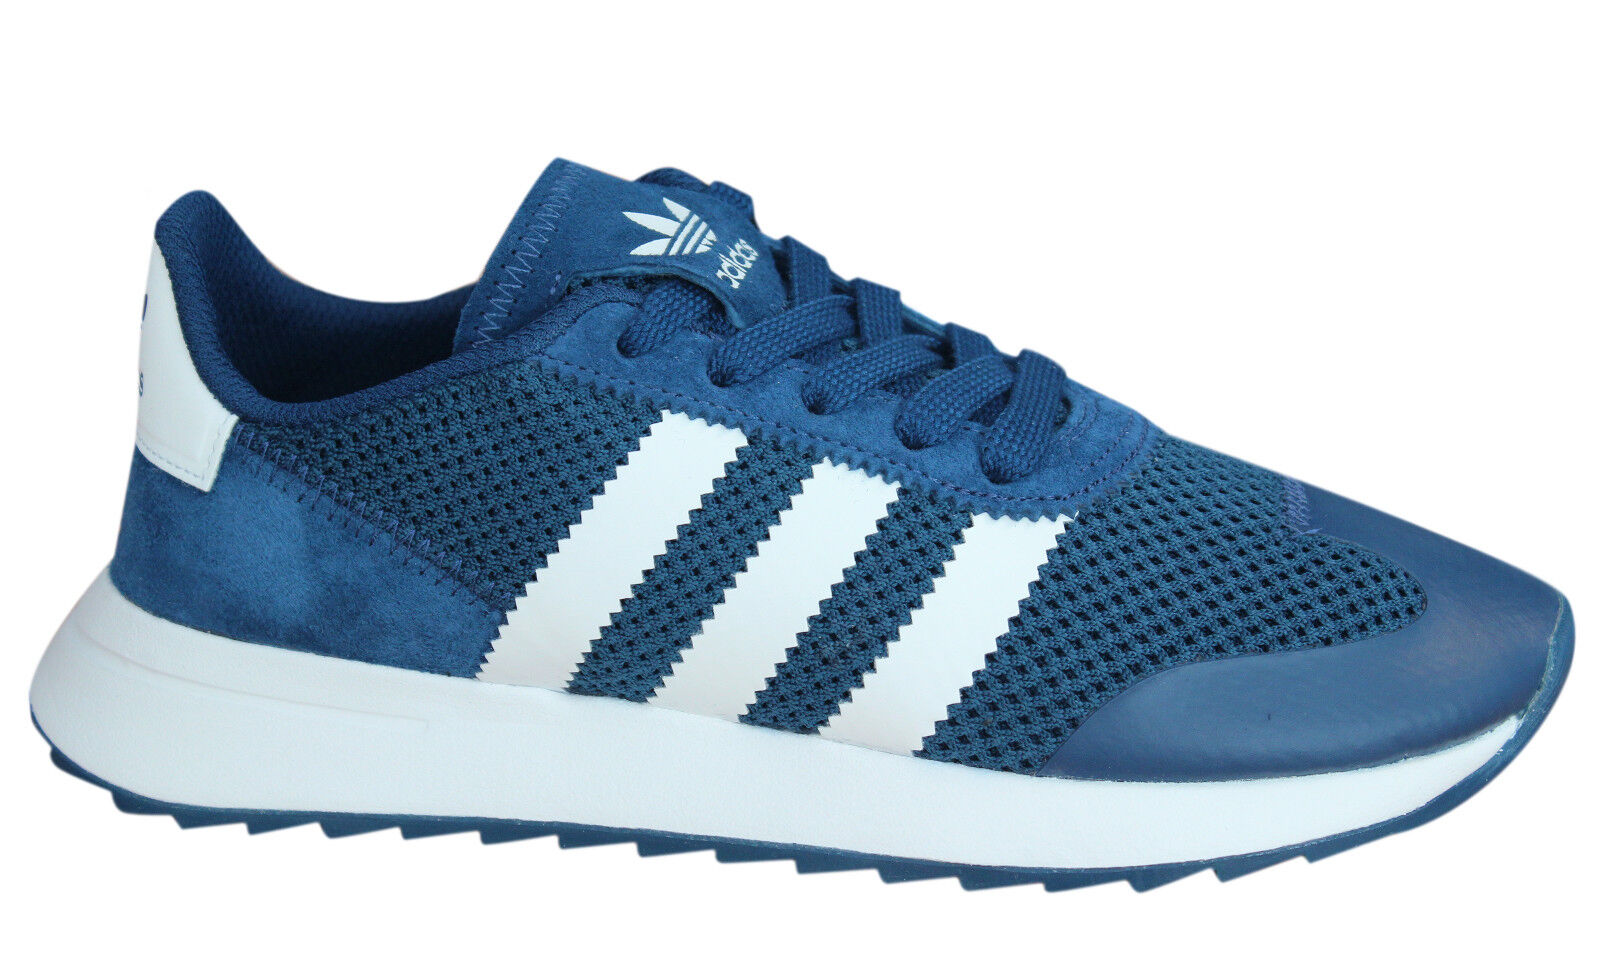 162a9efac882 Adidas Originals Flashrunner Womens Trainers Lace Up Shoes Navy Blue ...